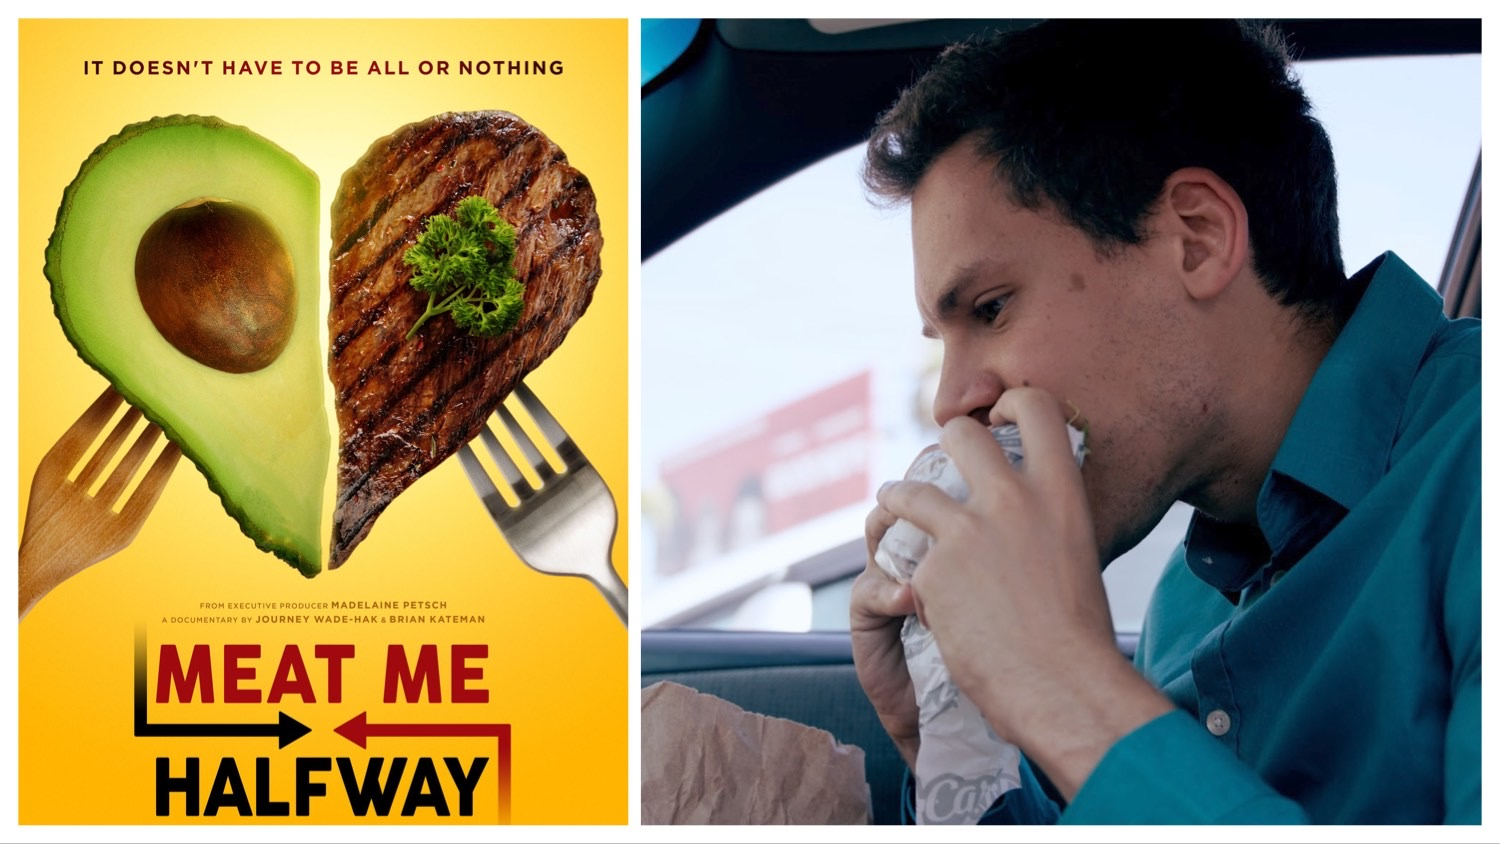 A split photo of the 'Meat Me Halfway' poster and Brian Kateman eating a meat-free meal